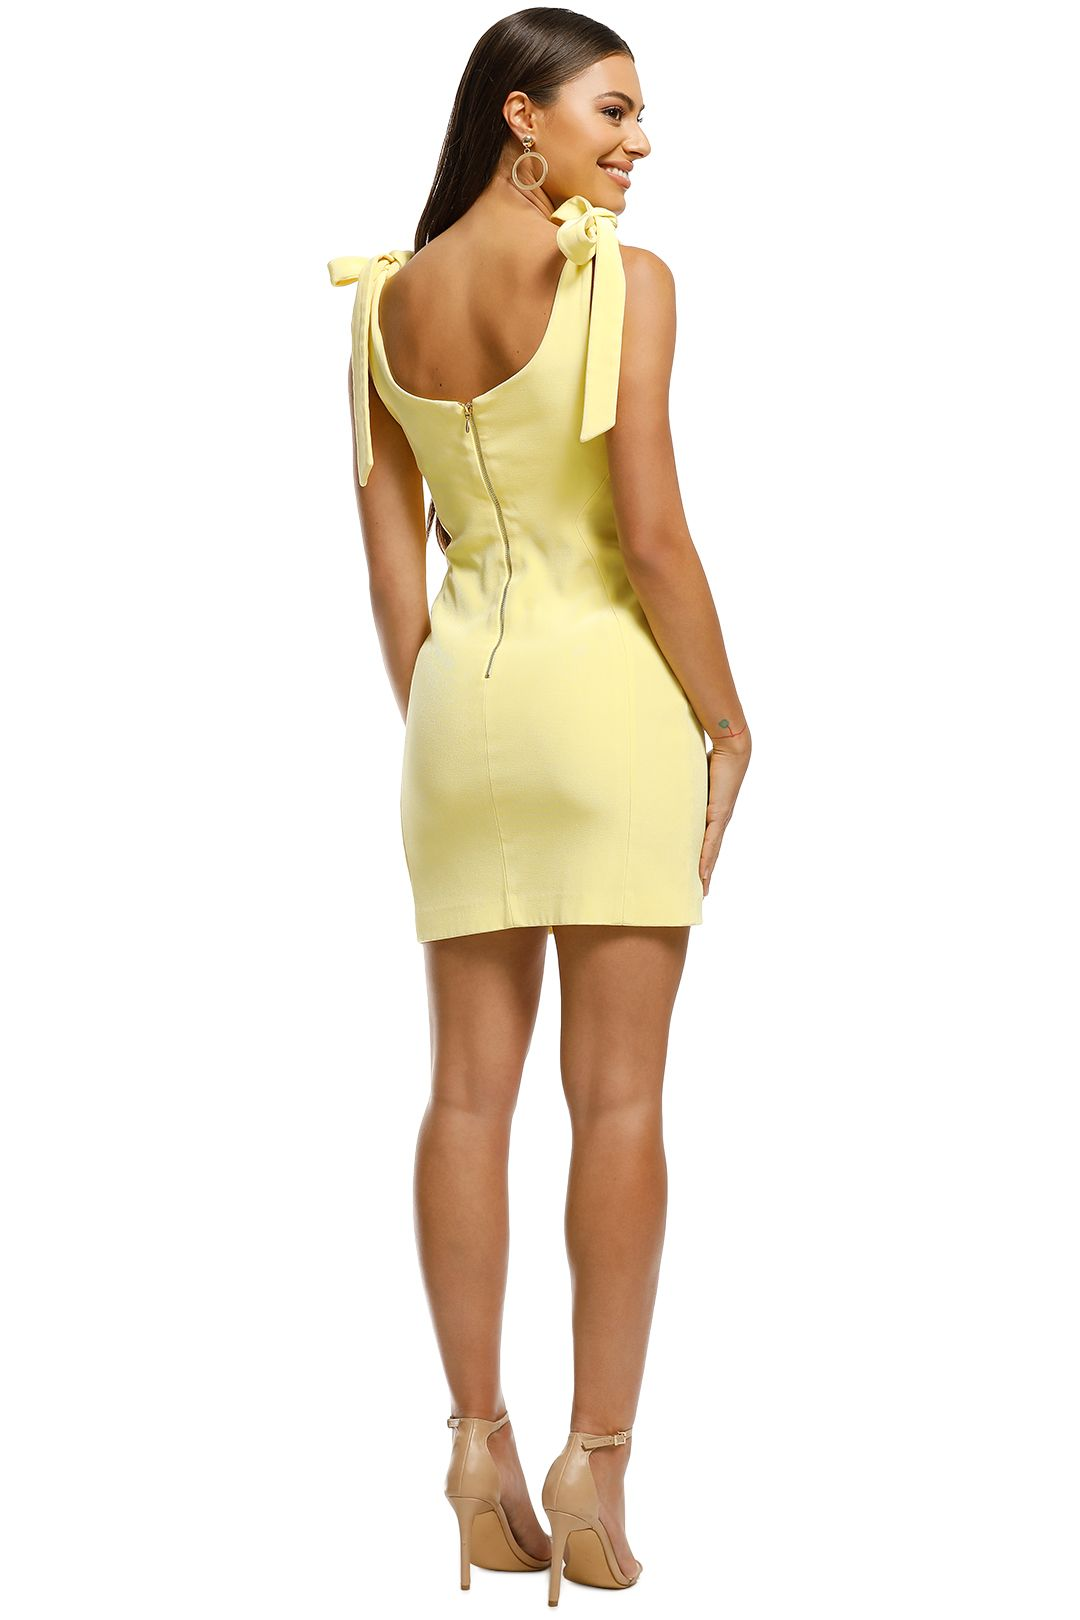 Rebecca Vallance - Zinnia Mini Dress - Yellow - Back